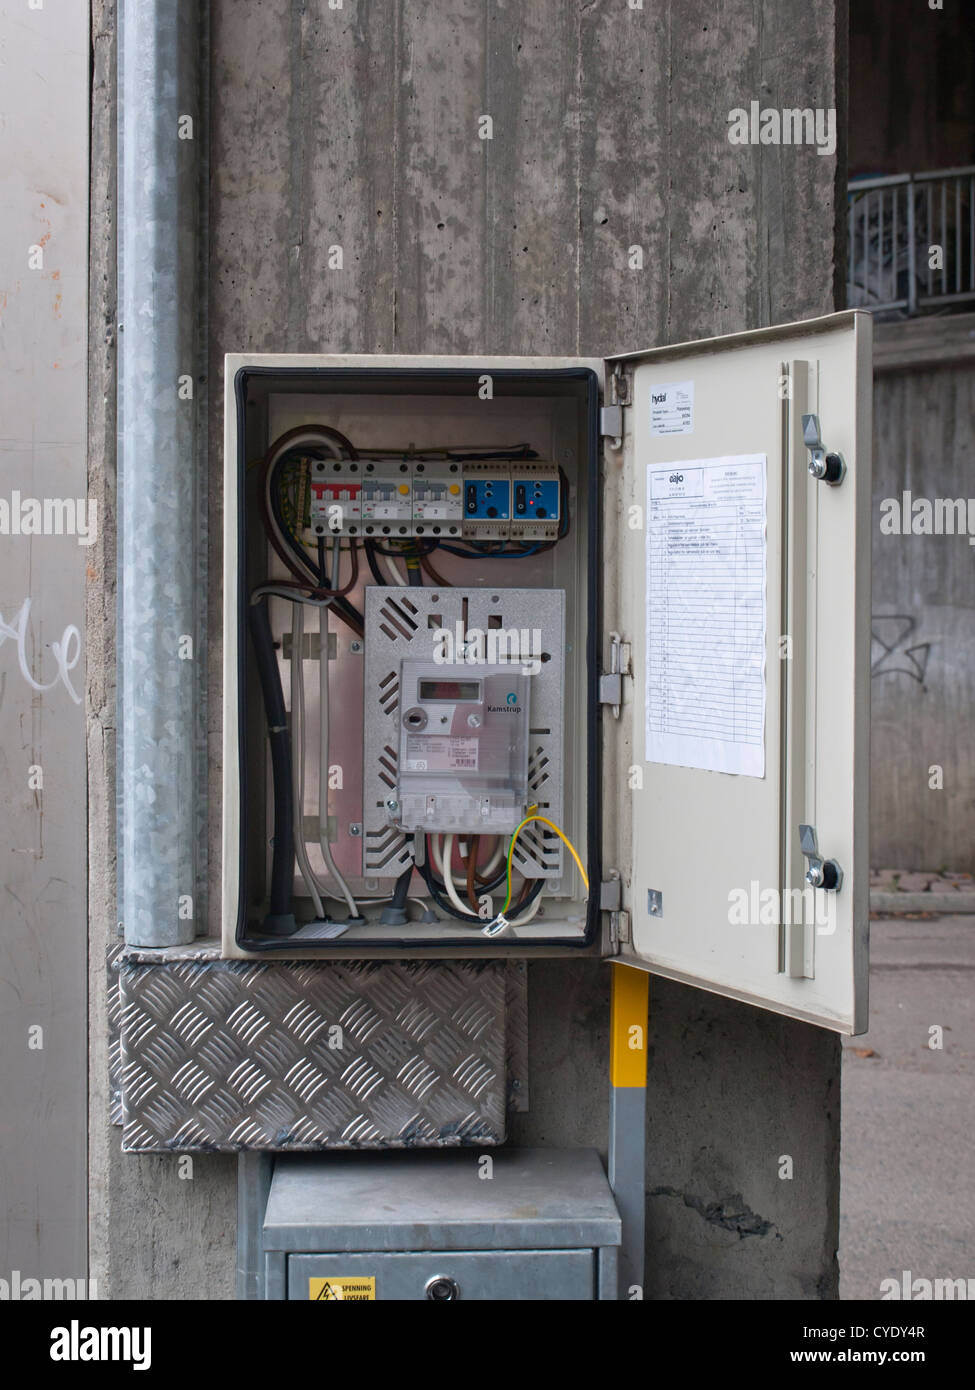 outdoors electrical junction connection or fuse box open for outdoors electrical junction connection or fuse box open for passers by to inspect